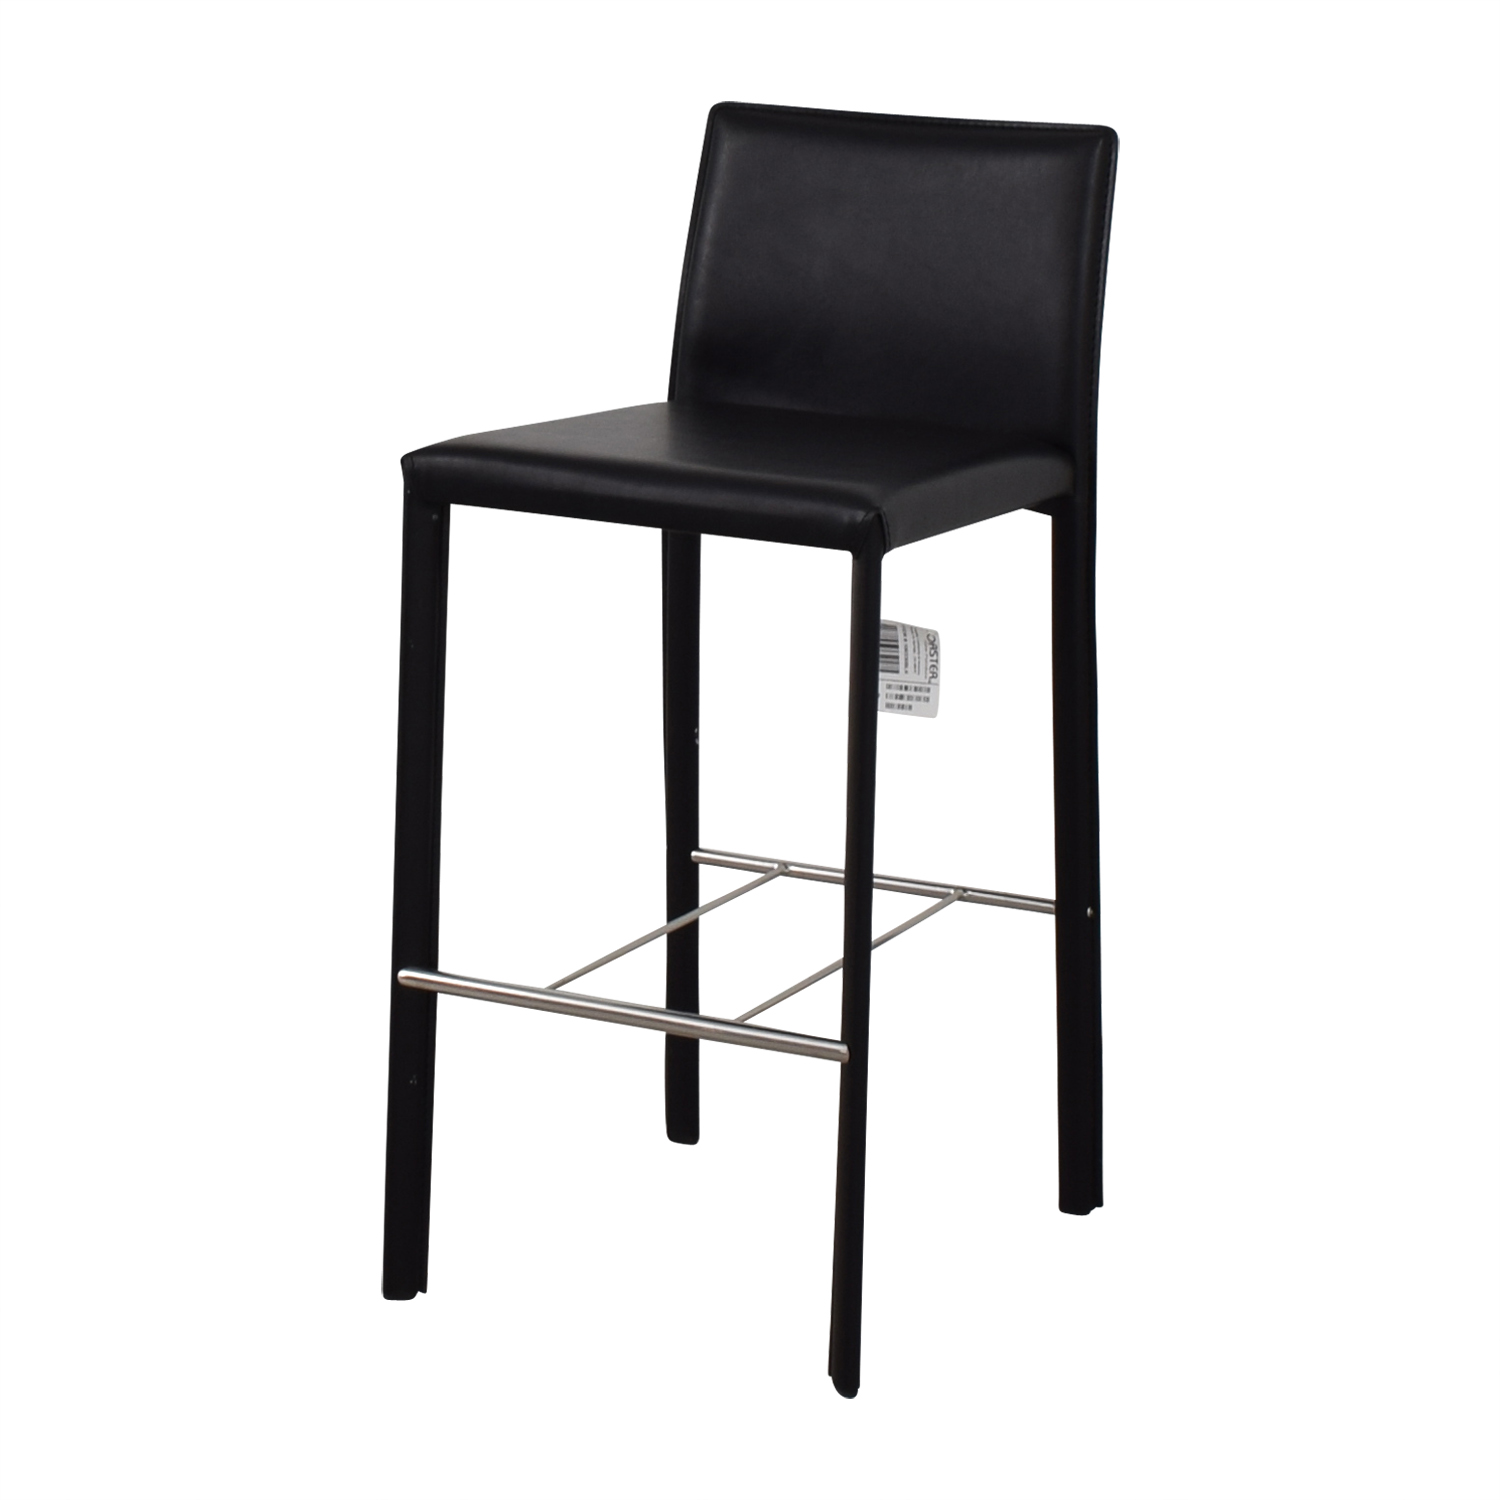 Coaster Coaster Modern Black Leatherette Bar Chair dimensions